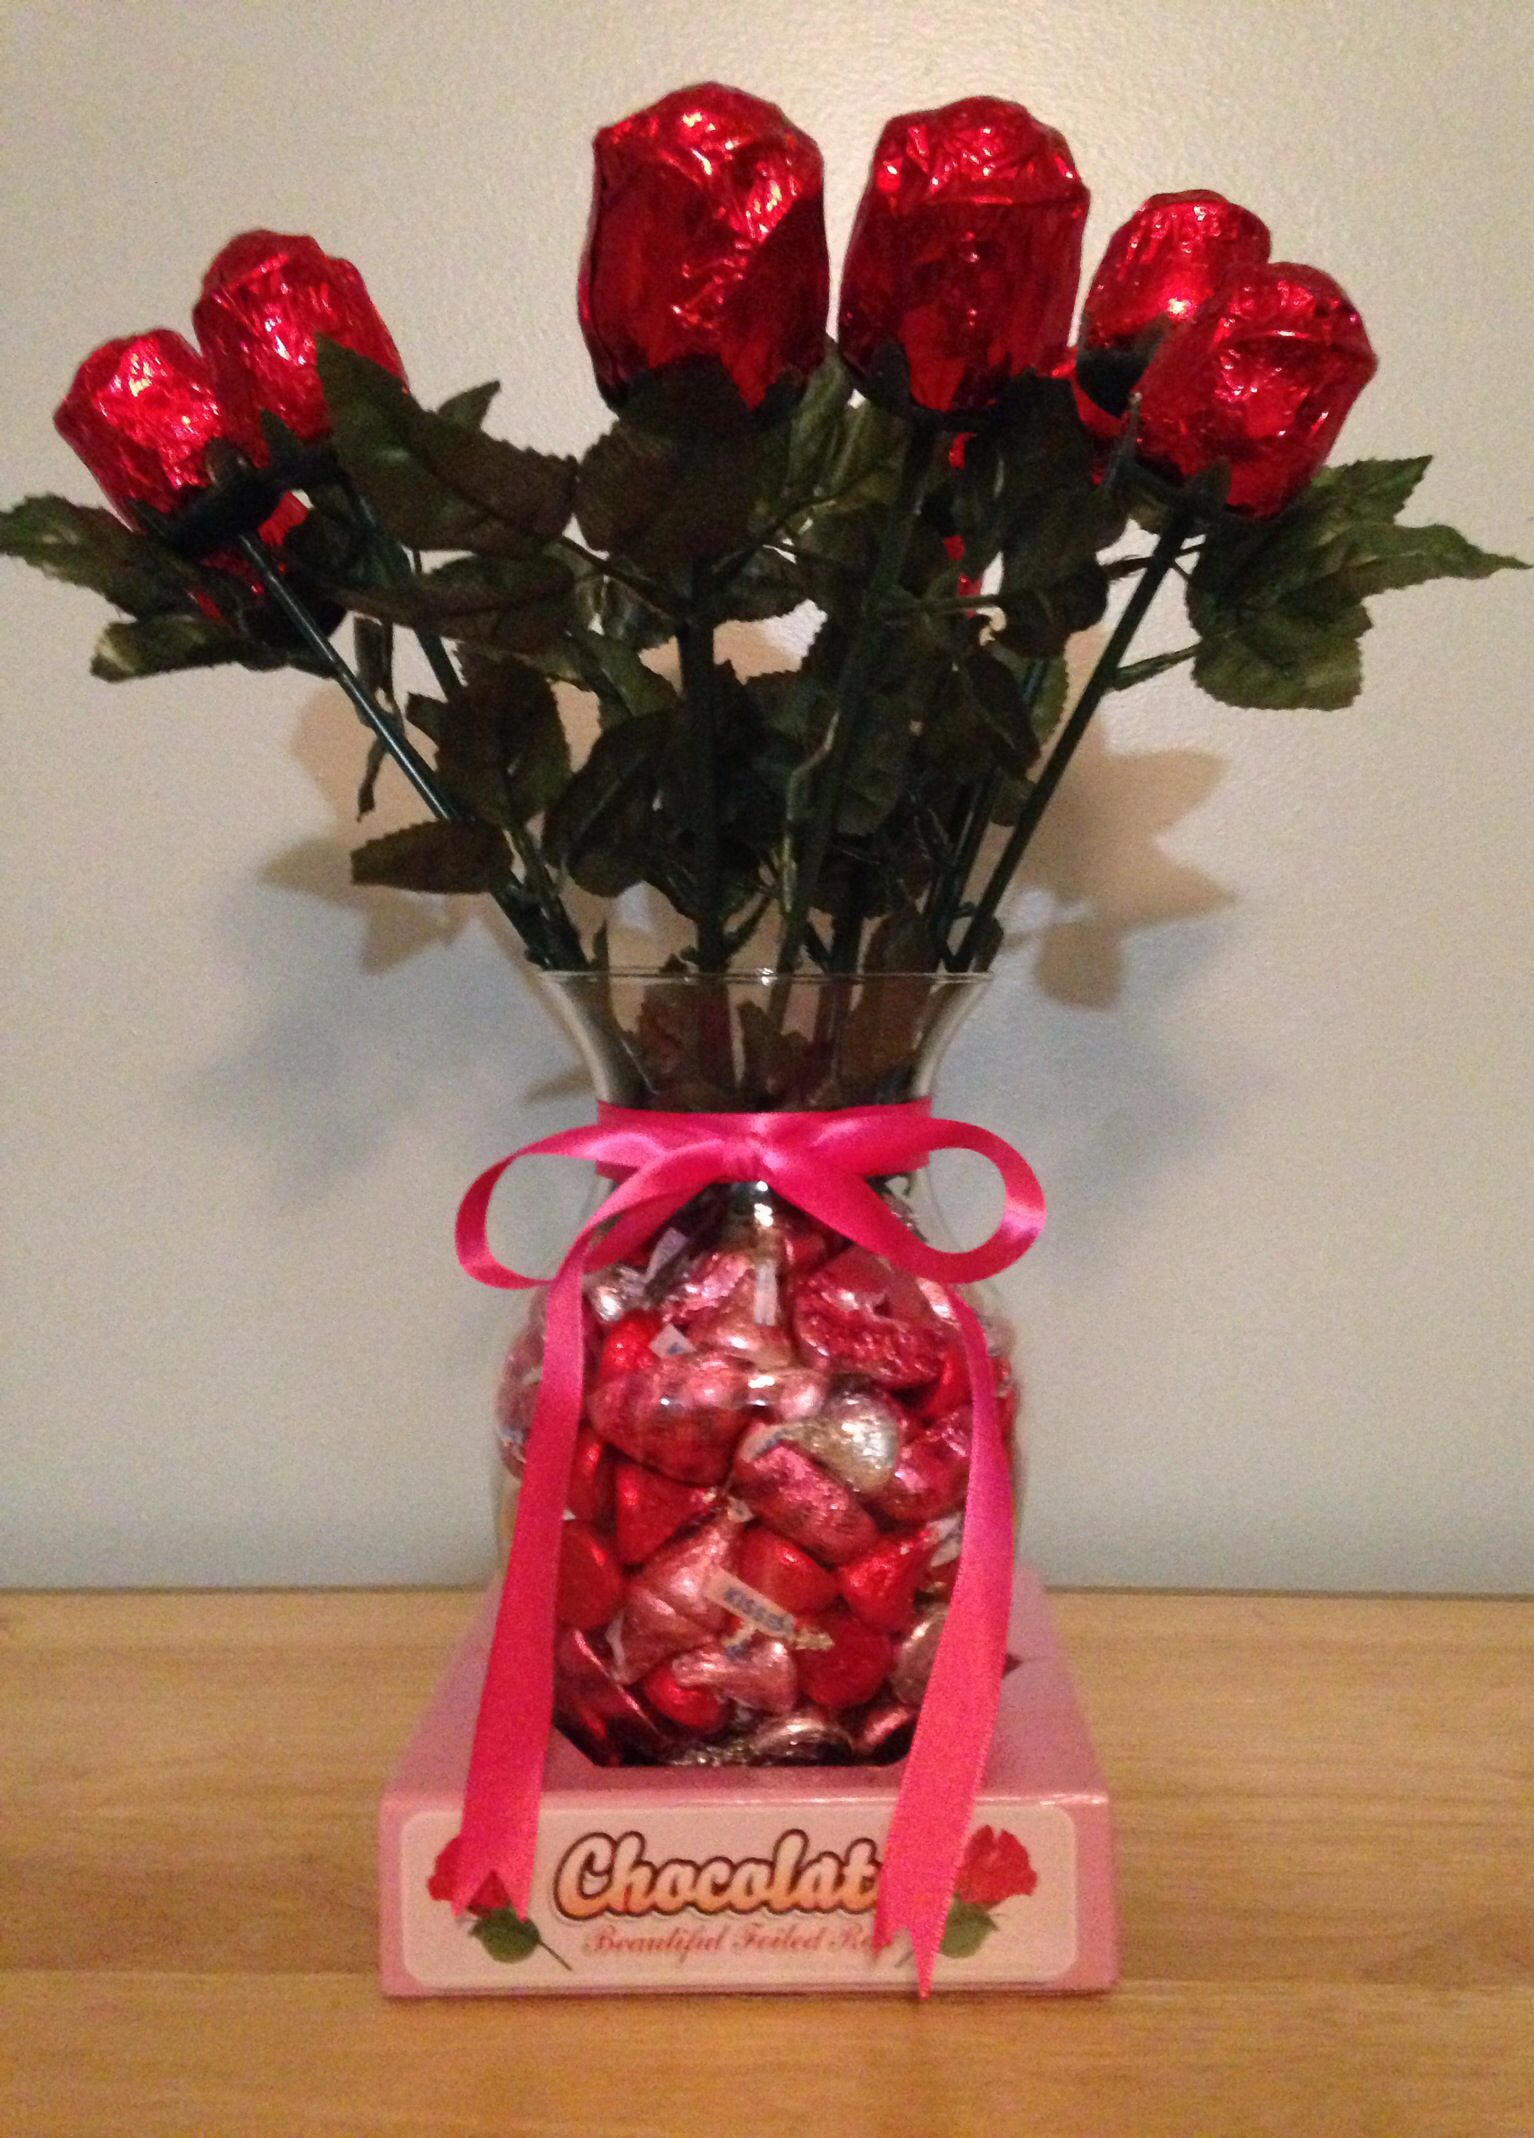 Diy valentines day candy flower bouquet buy a dozen chocolate diy valentines day candy flower bouquet buy a dozen chocolate roses and some hersheys kisses izmirmasajfo Choice Image